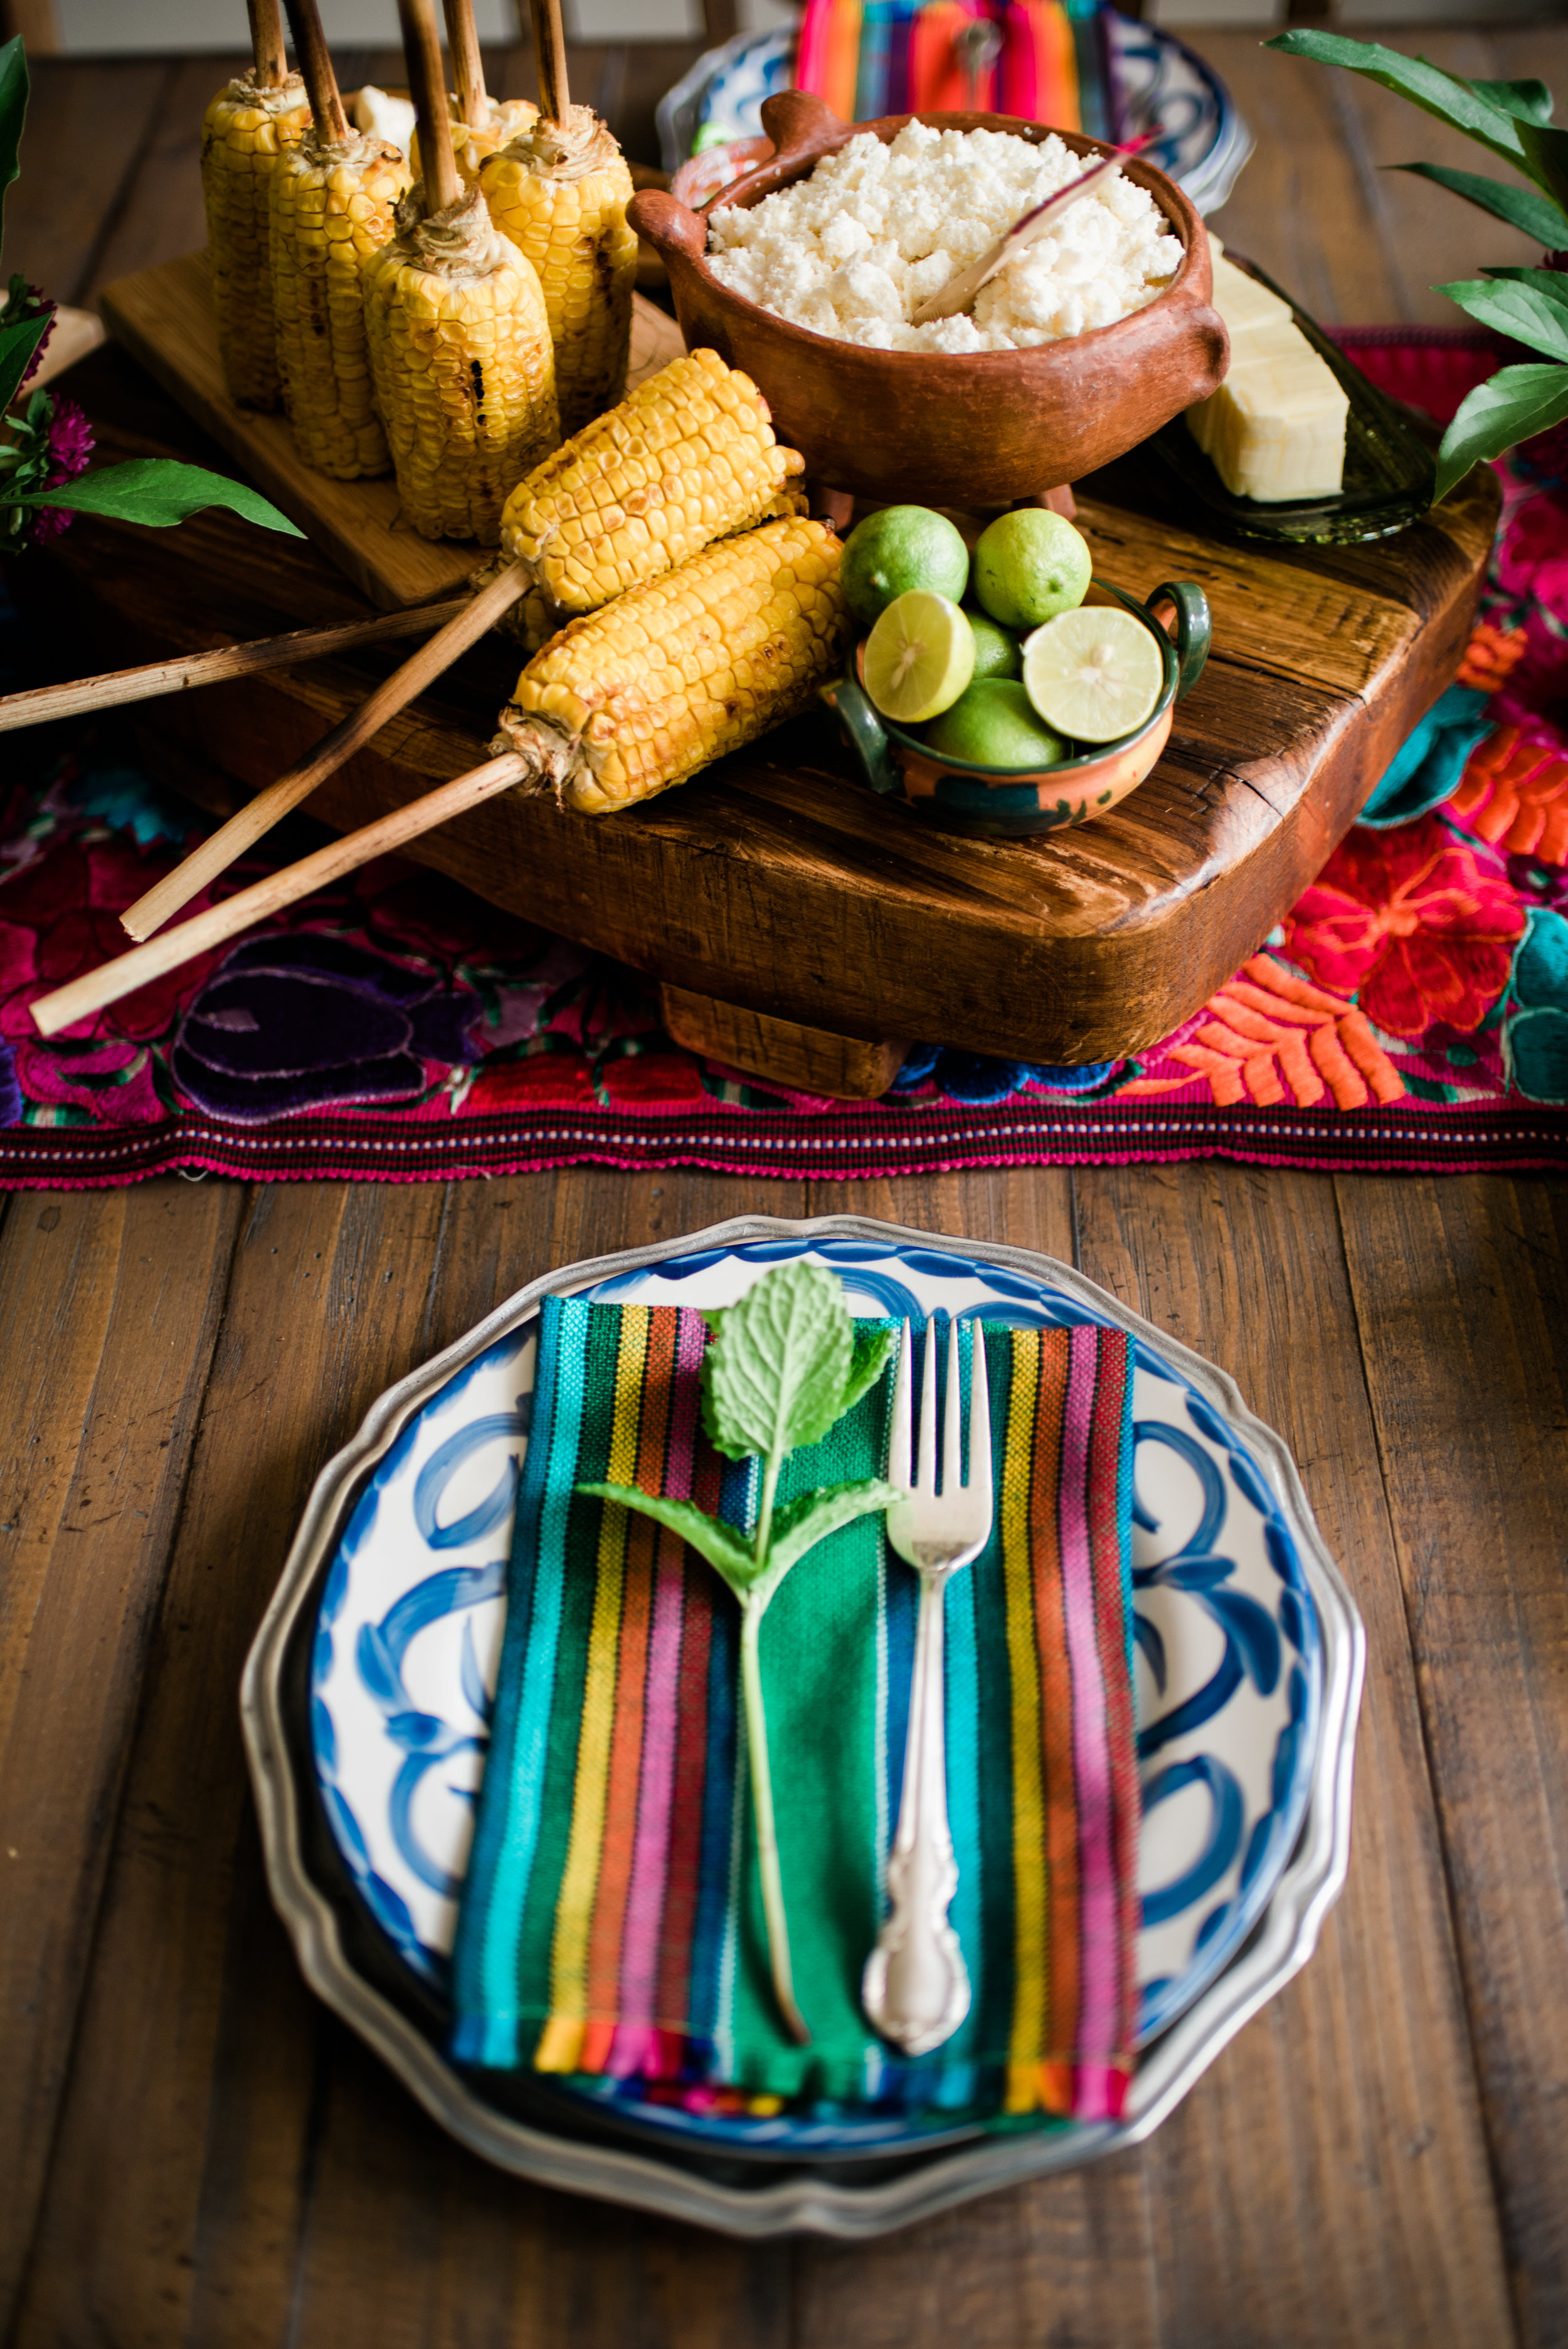 Lola sells these vibrant cloth napkins.See captions in the photos below for links and details.